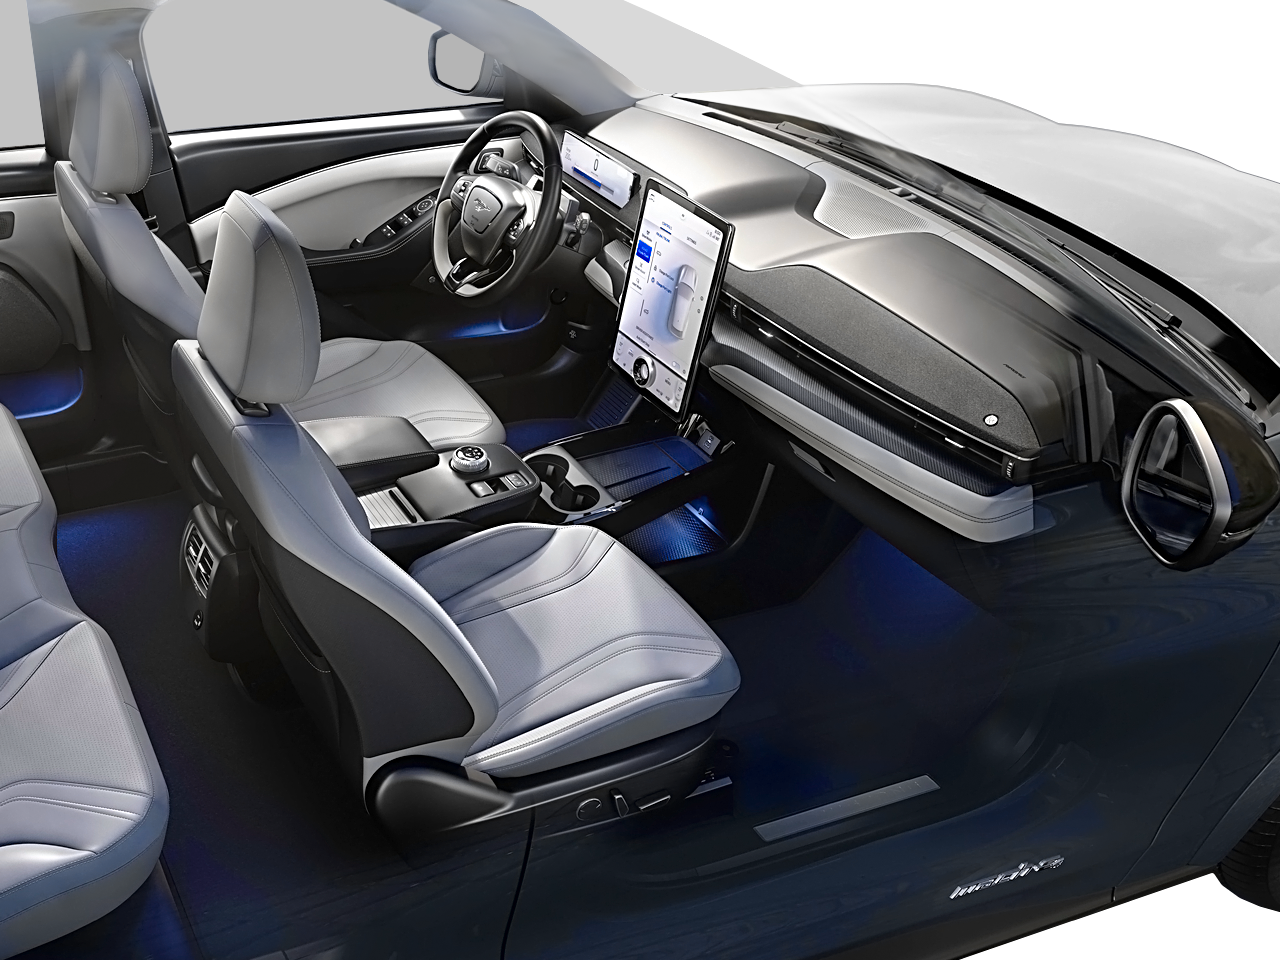 Interior view of the Ford Mustang Mach E